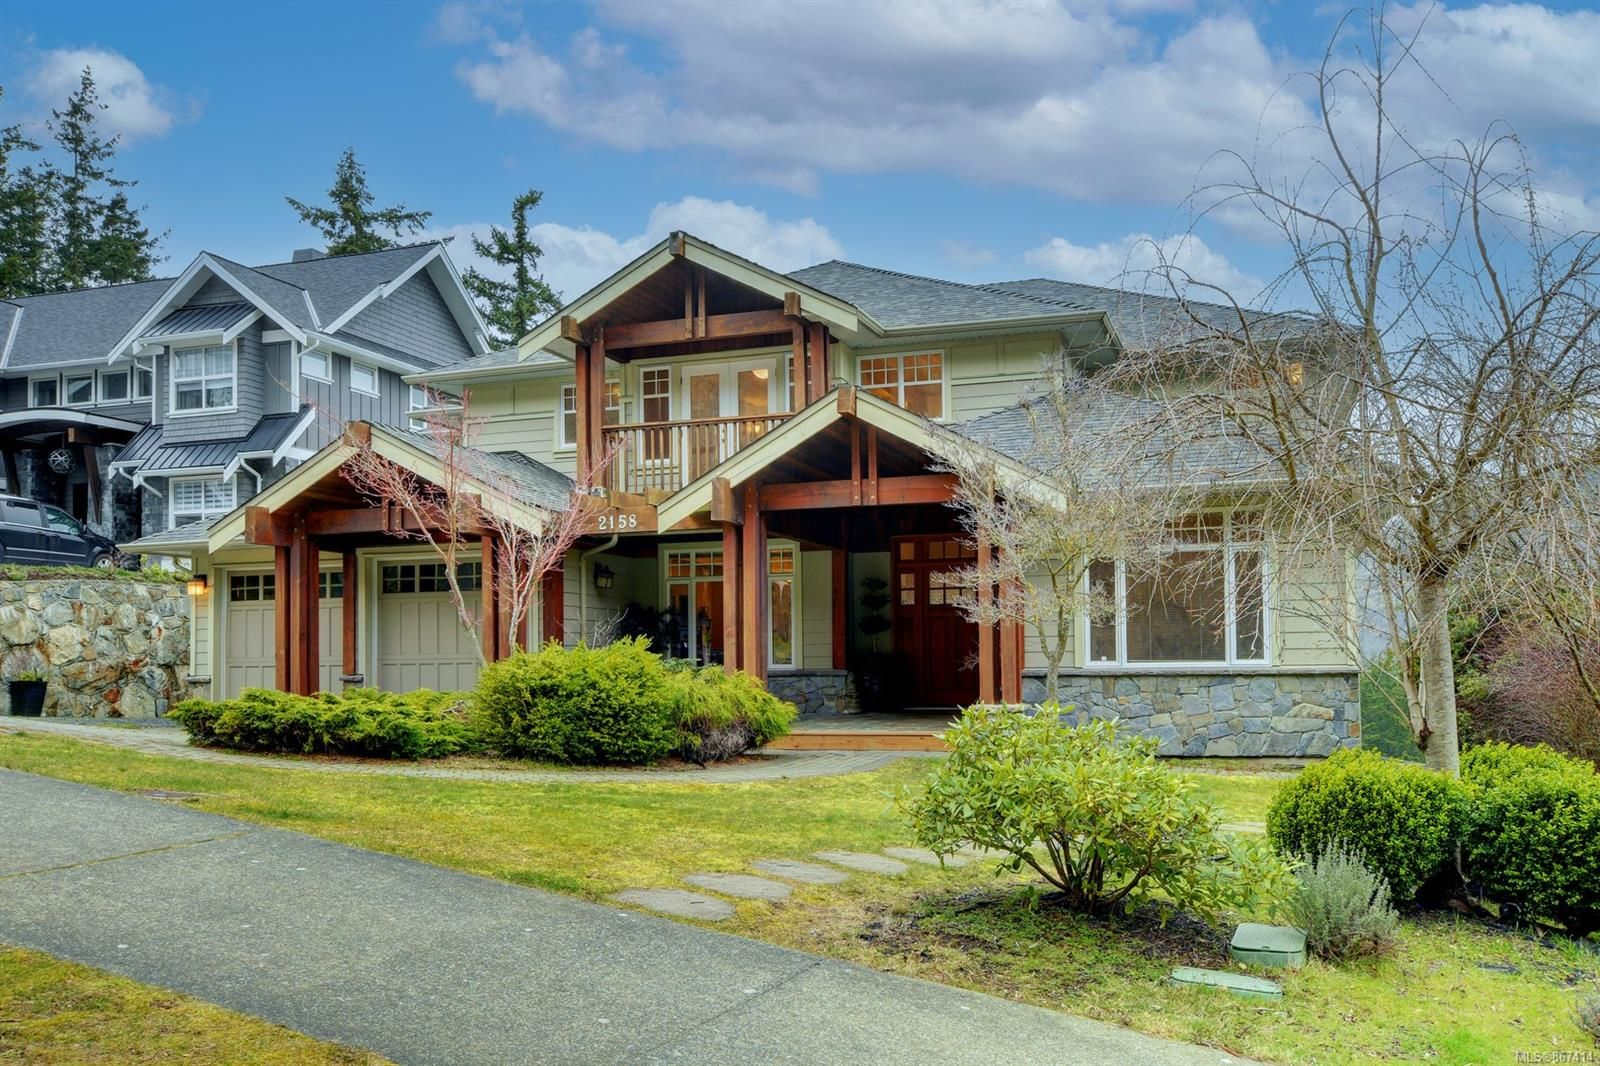 Main Photo: 2158 Nicklaus Dr in : La Bear Mountain House for sale (Langford)  : MLS®# 867414